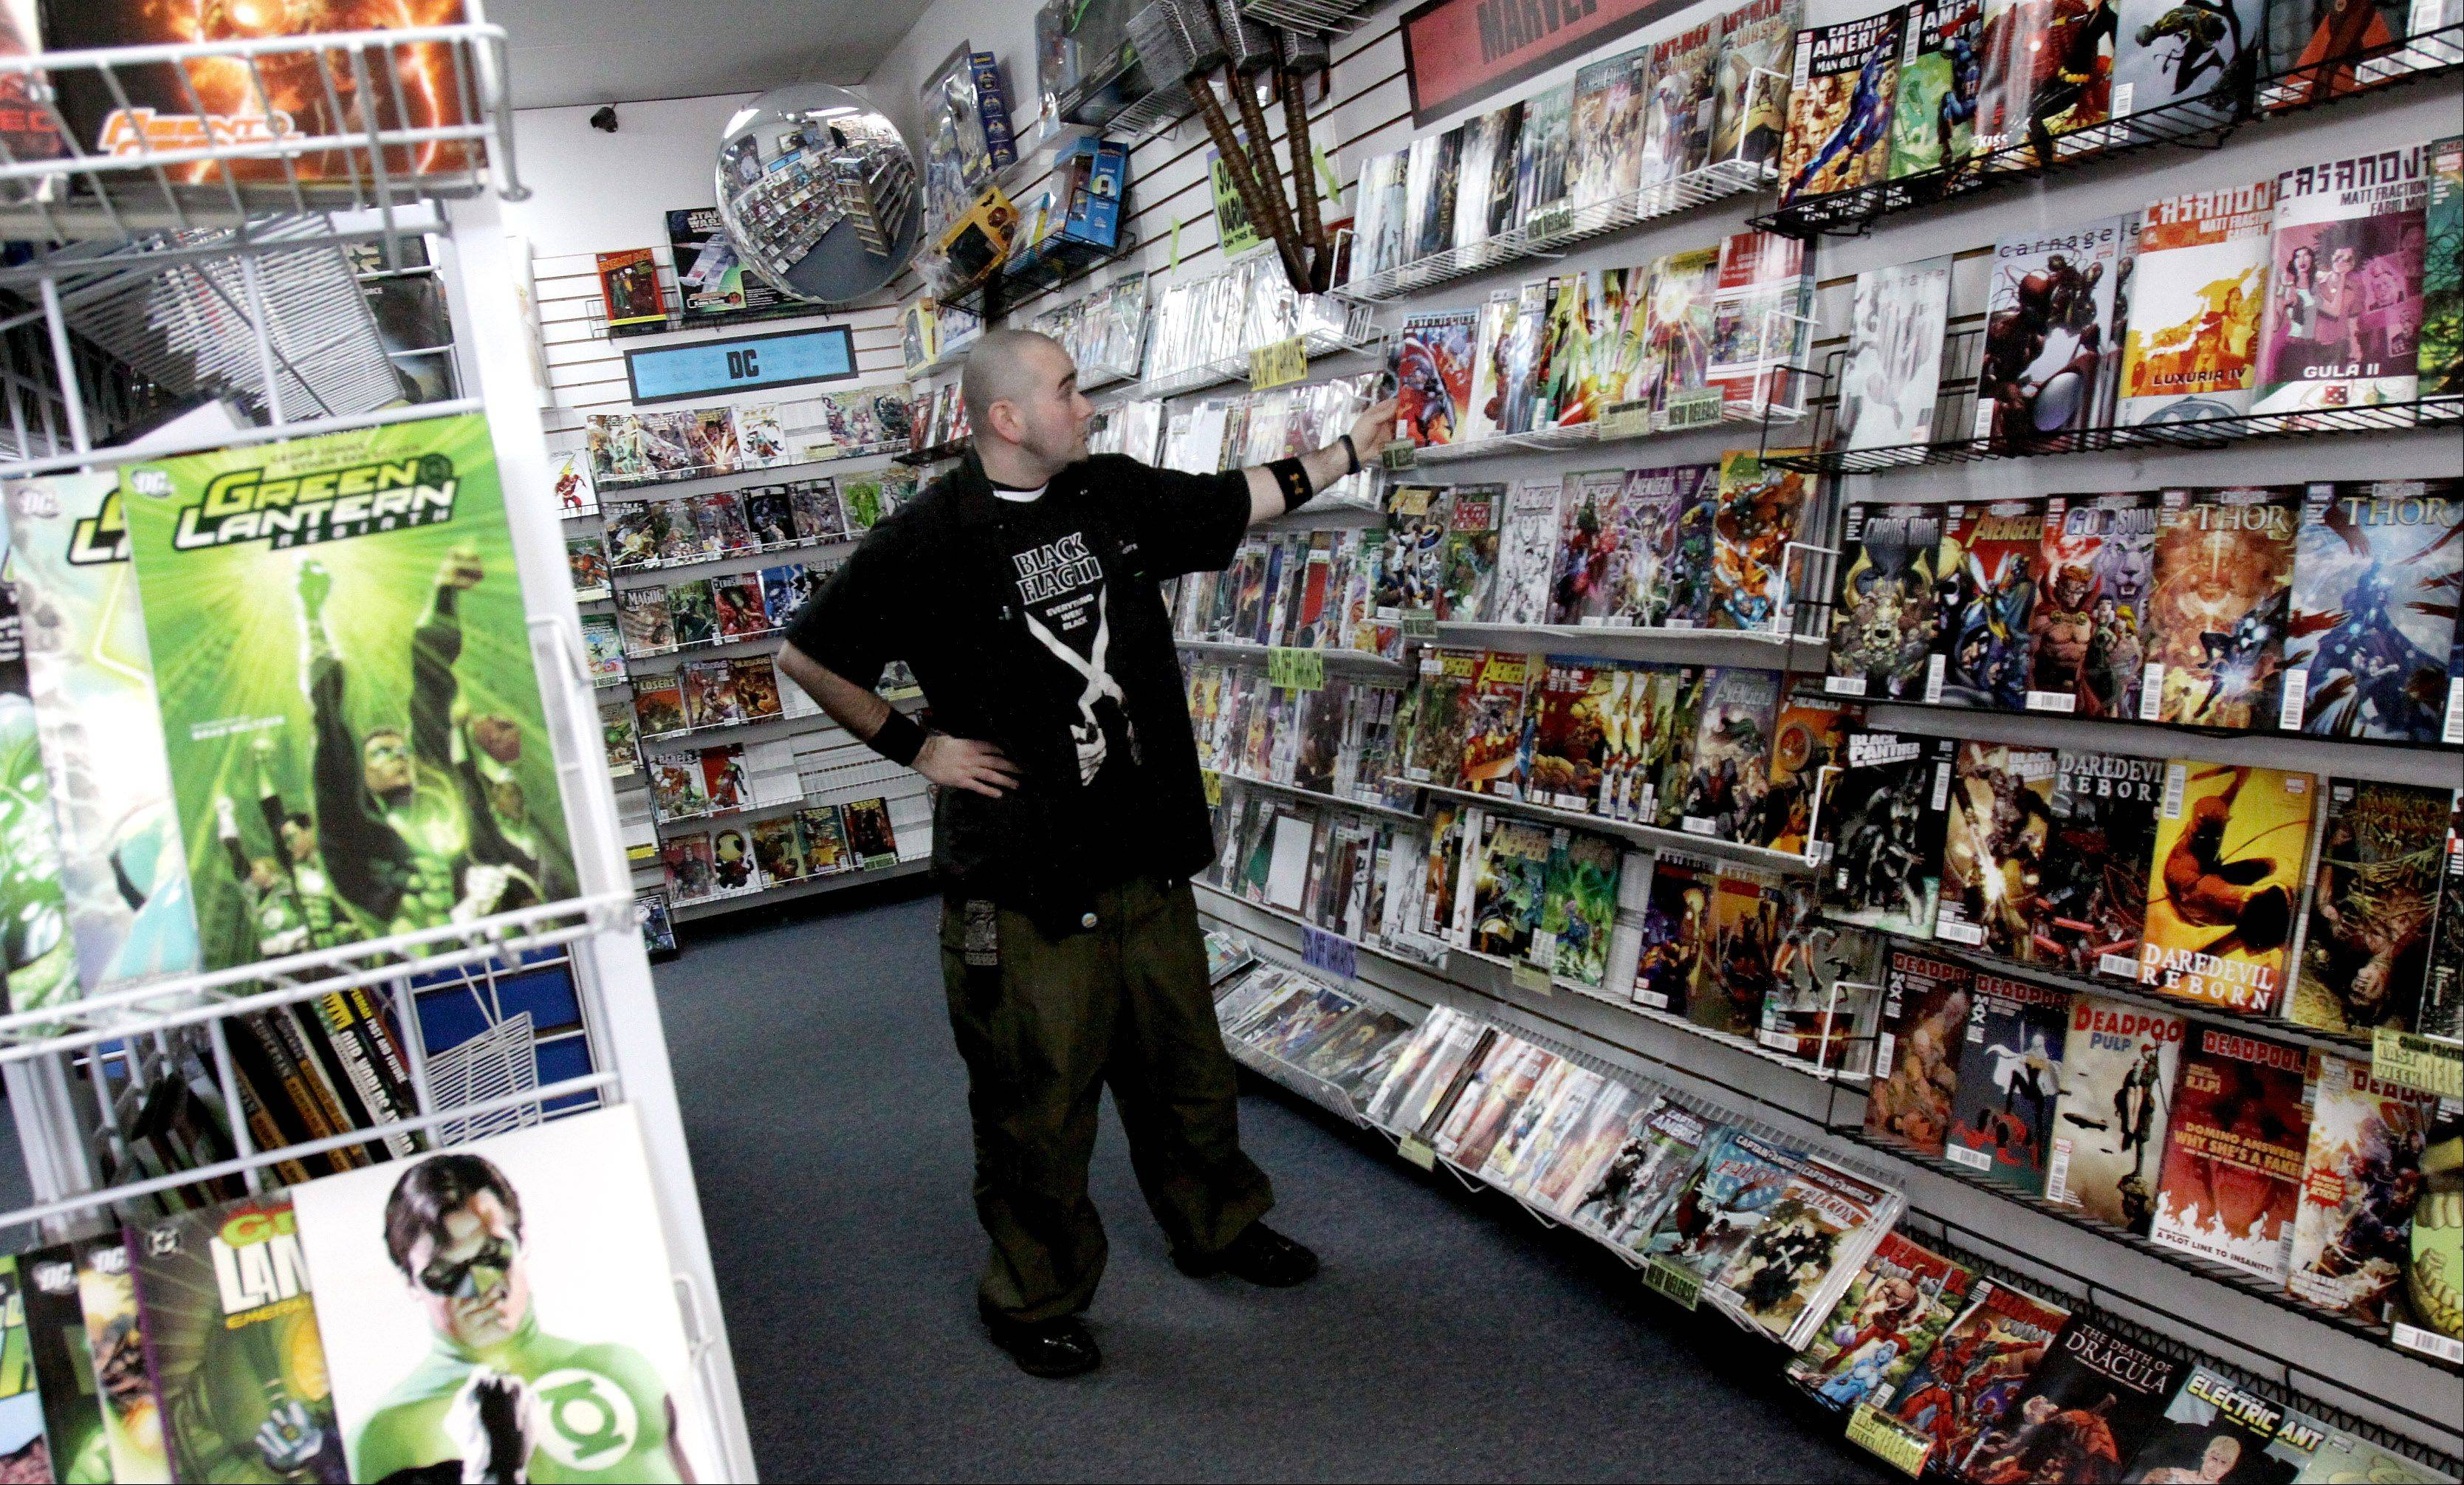 An employee shelves books at the Graham Cracker Comics store in Naperville. The local comic-store chain, with several locations in the suburbs, will again sell old and new comics at the Chicago Comic Con in Rosemont.